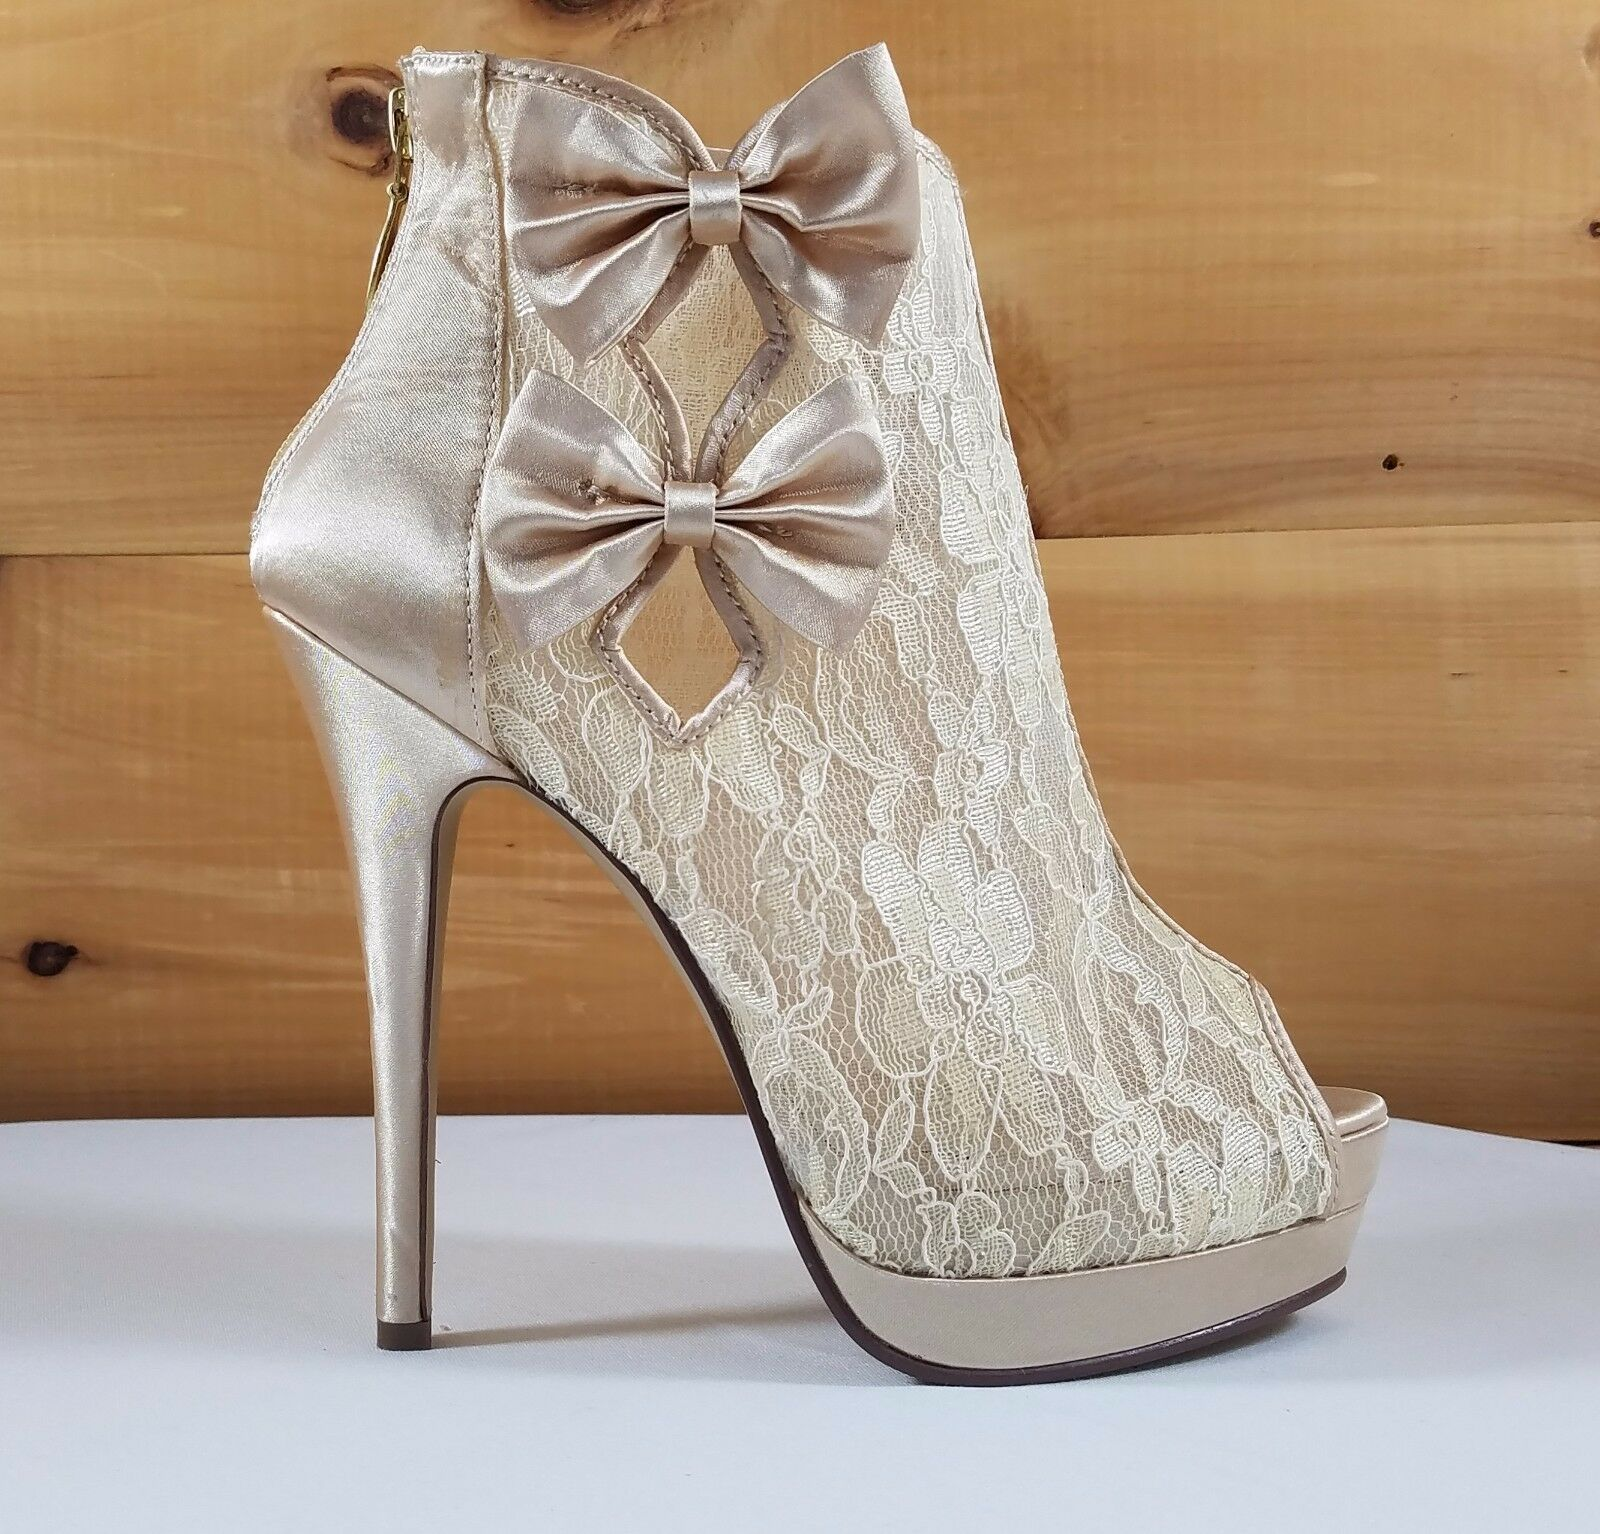 Lace & Bows Platform Open Toe High Heel Ankle Boot shoes Ivory Champagne